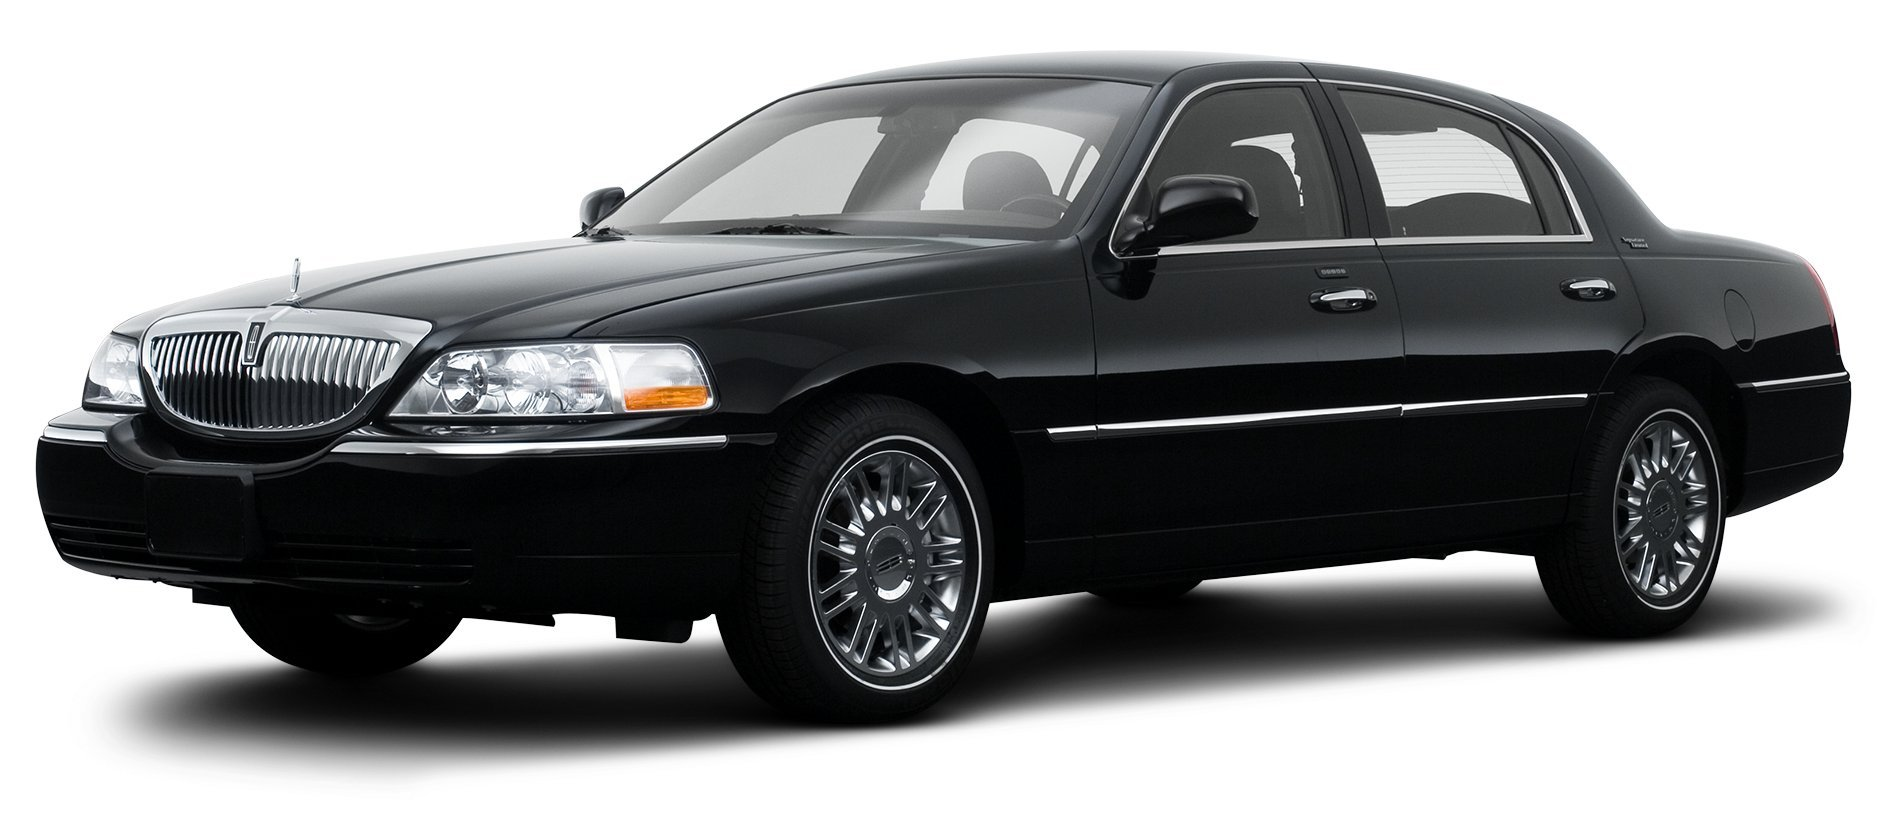 Amazon Com  2008 Lincoln Town Car Reviews  Images  And